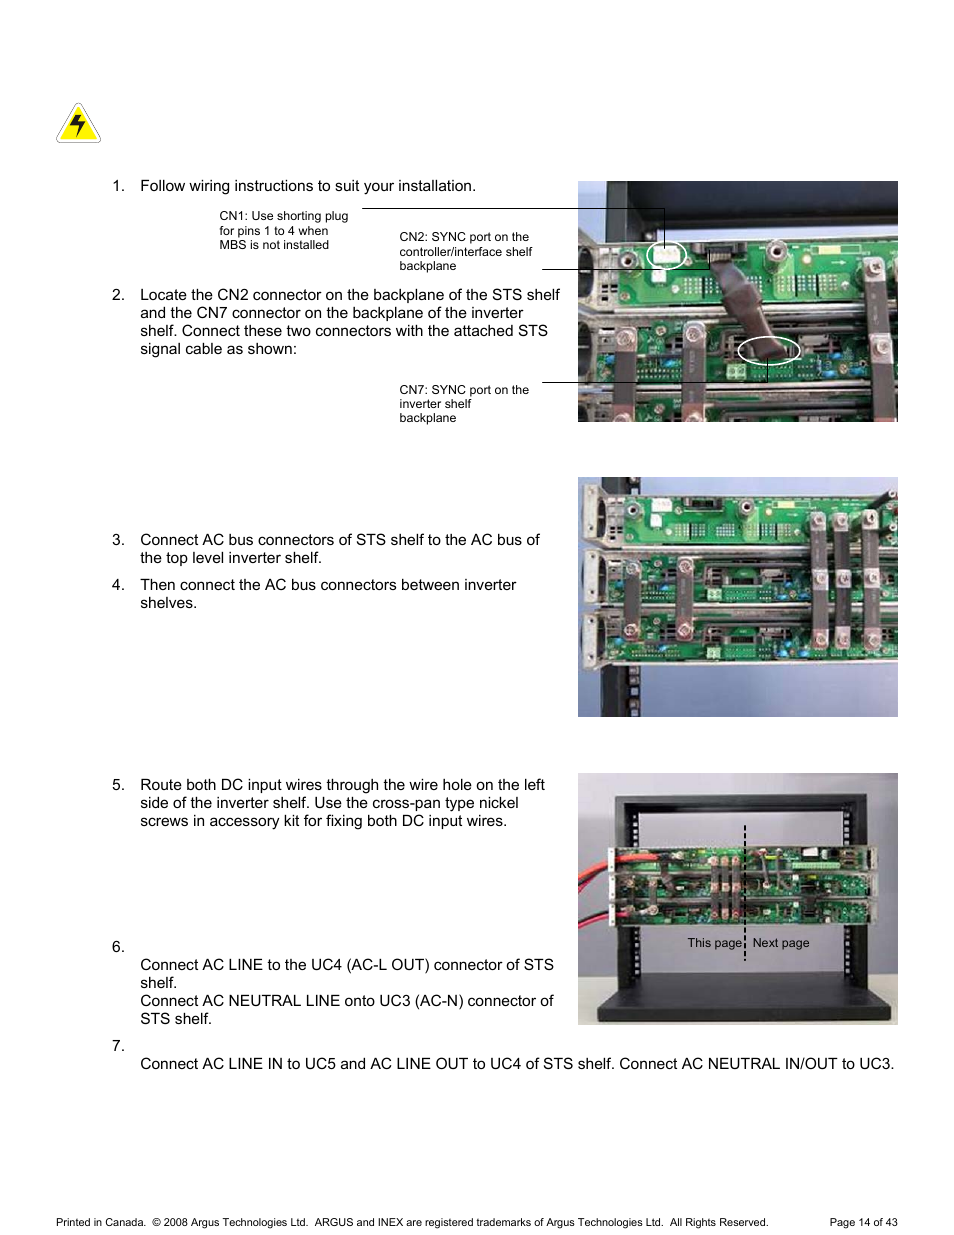 Sts Controller Shelf 6 Alpha Technologies Wiring Neutral Bus Bar Inex Inverter System User Manual Page 24 54